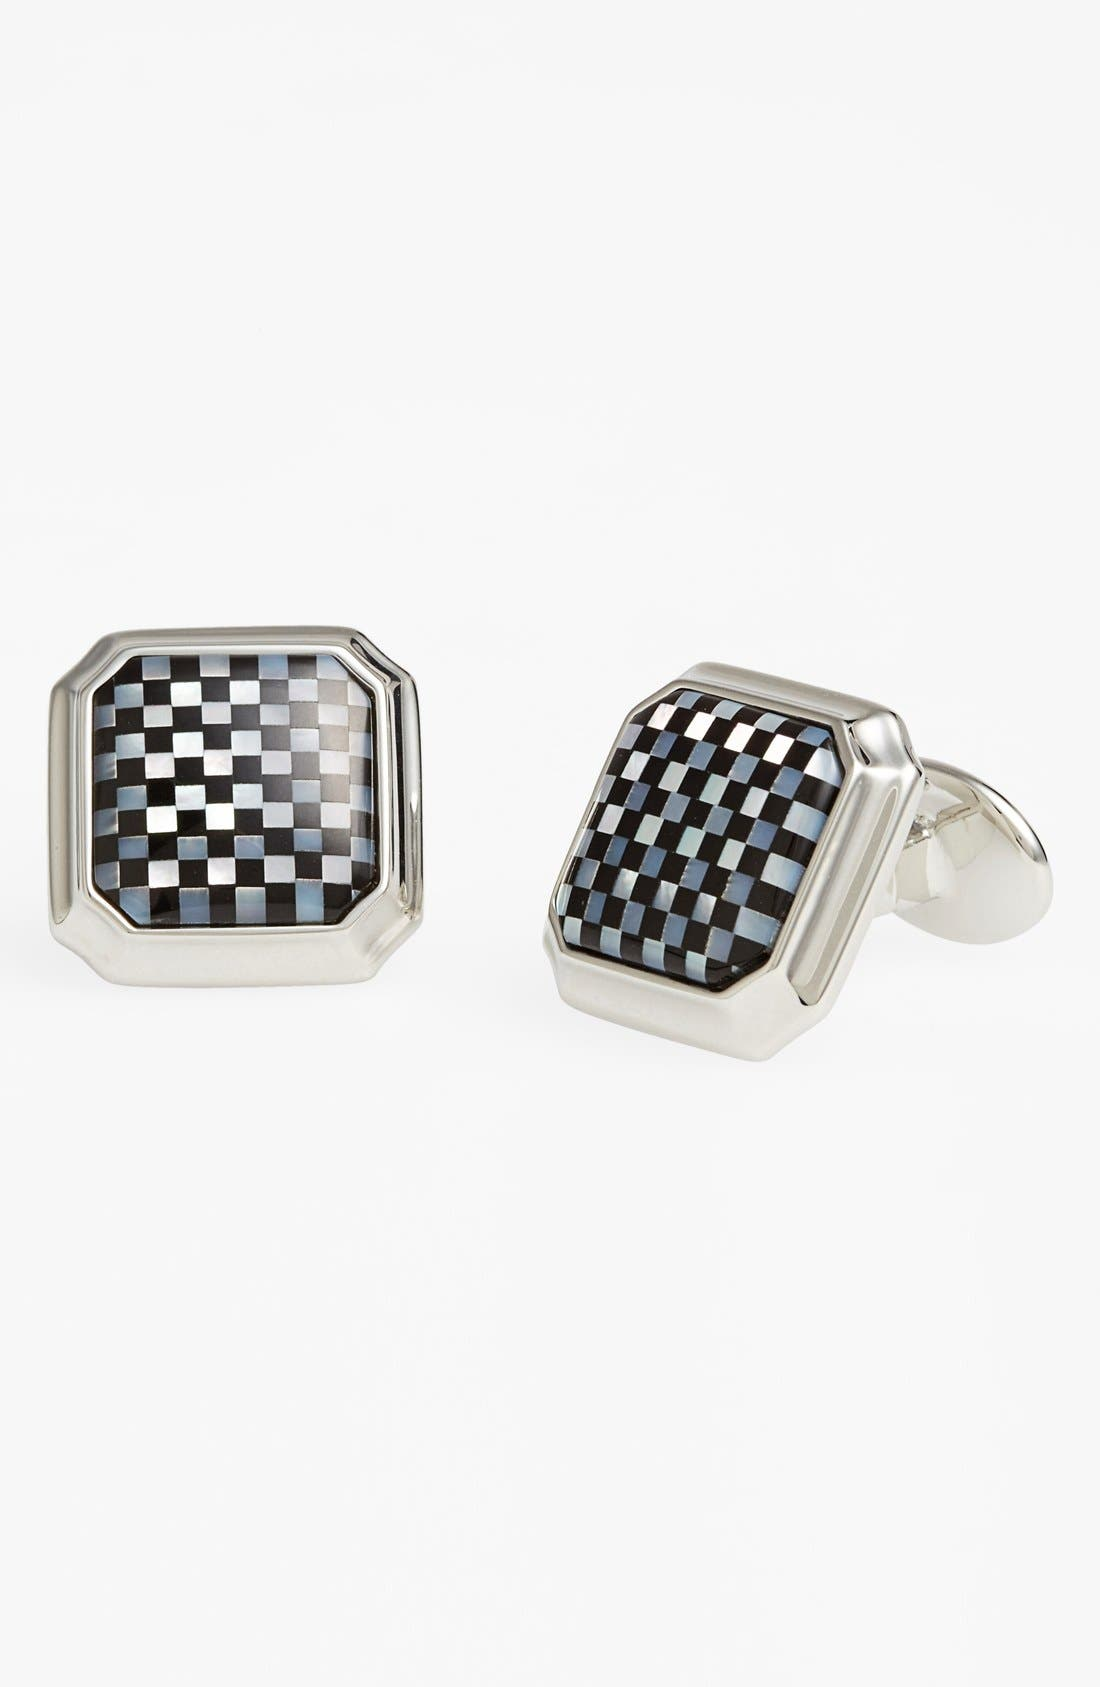 Main Image - David Donahue Mother of Pearl & Onyx Cuff Links